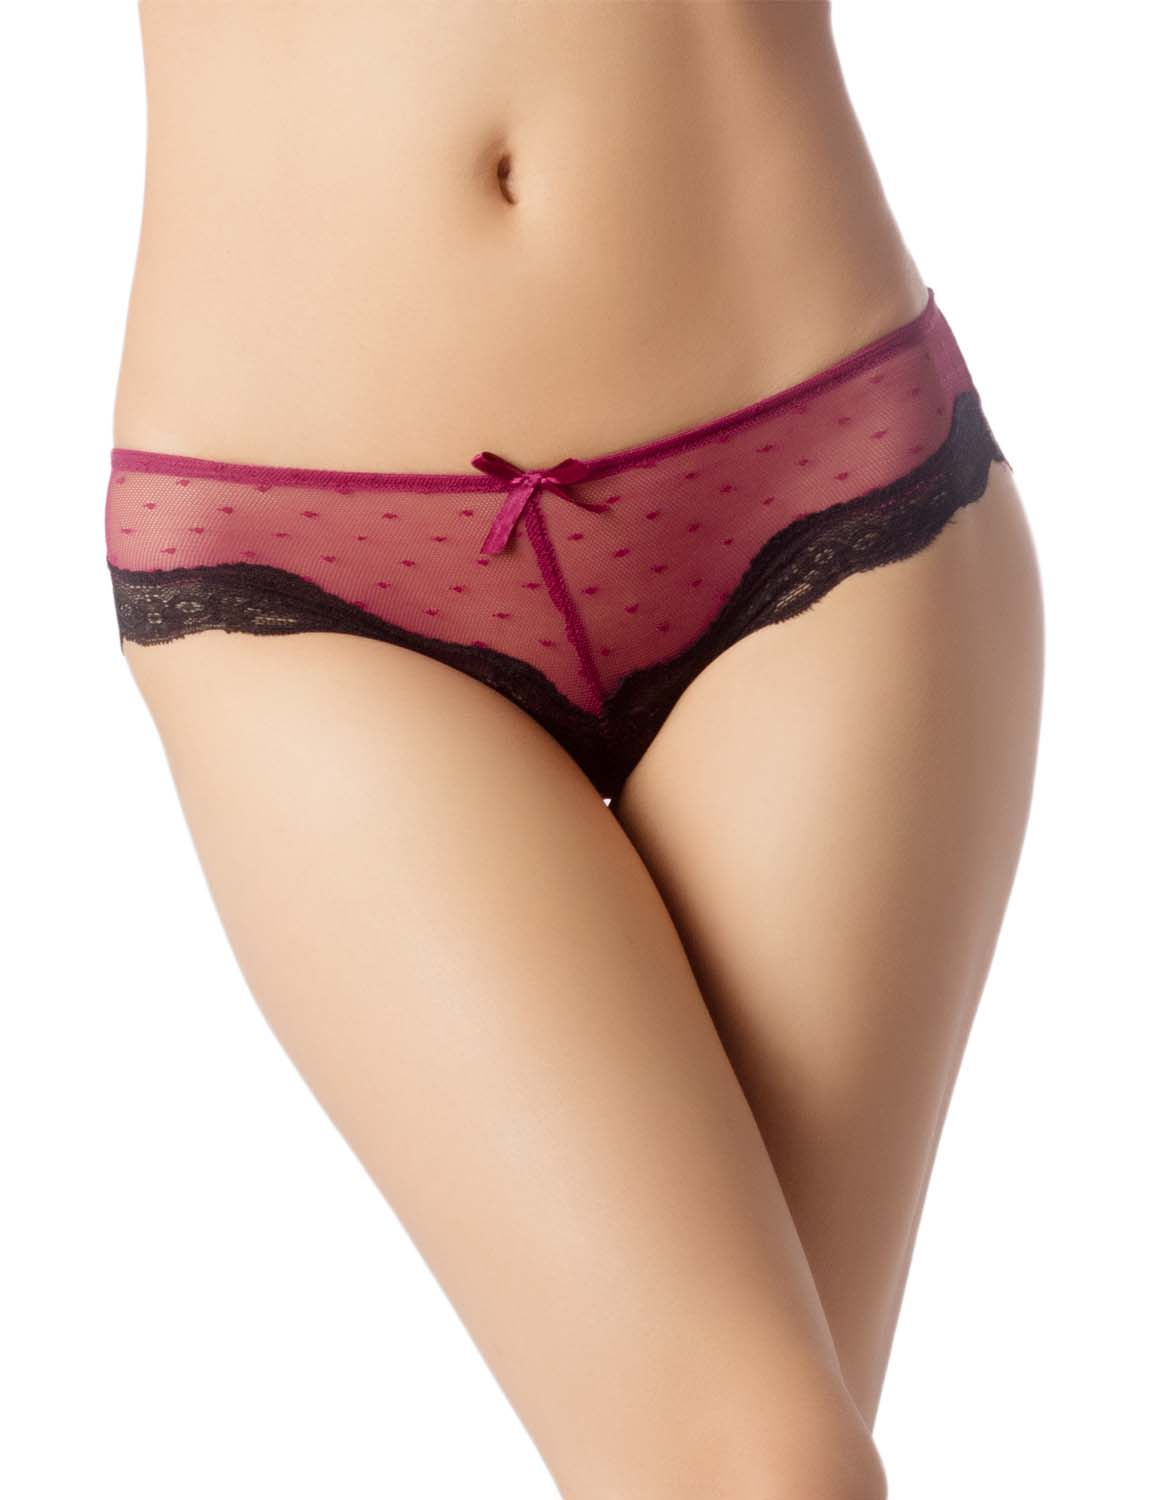 Women's Lace See-Through Mesh Breathable Underwear Low Rise Hipster Panty, Size: L, Burgundy